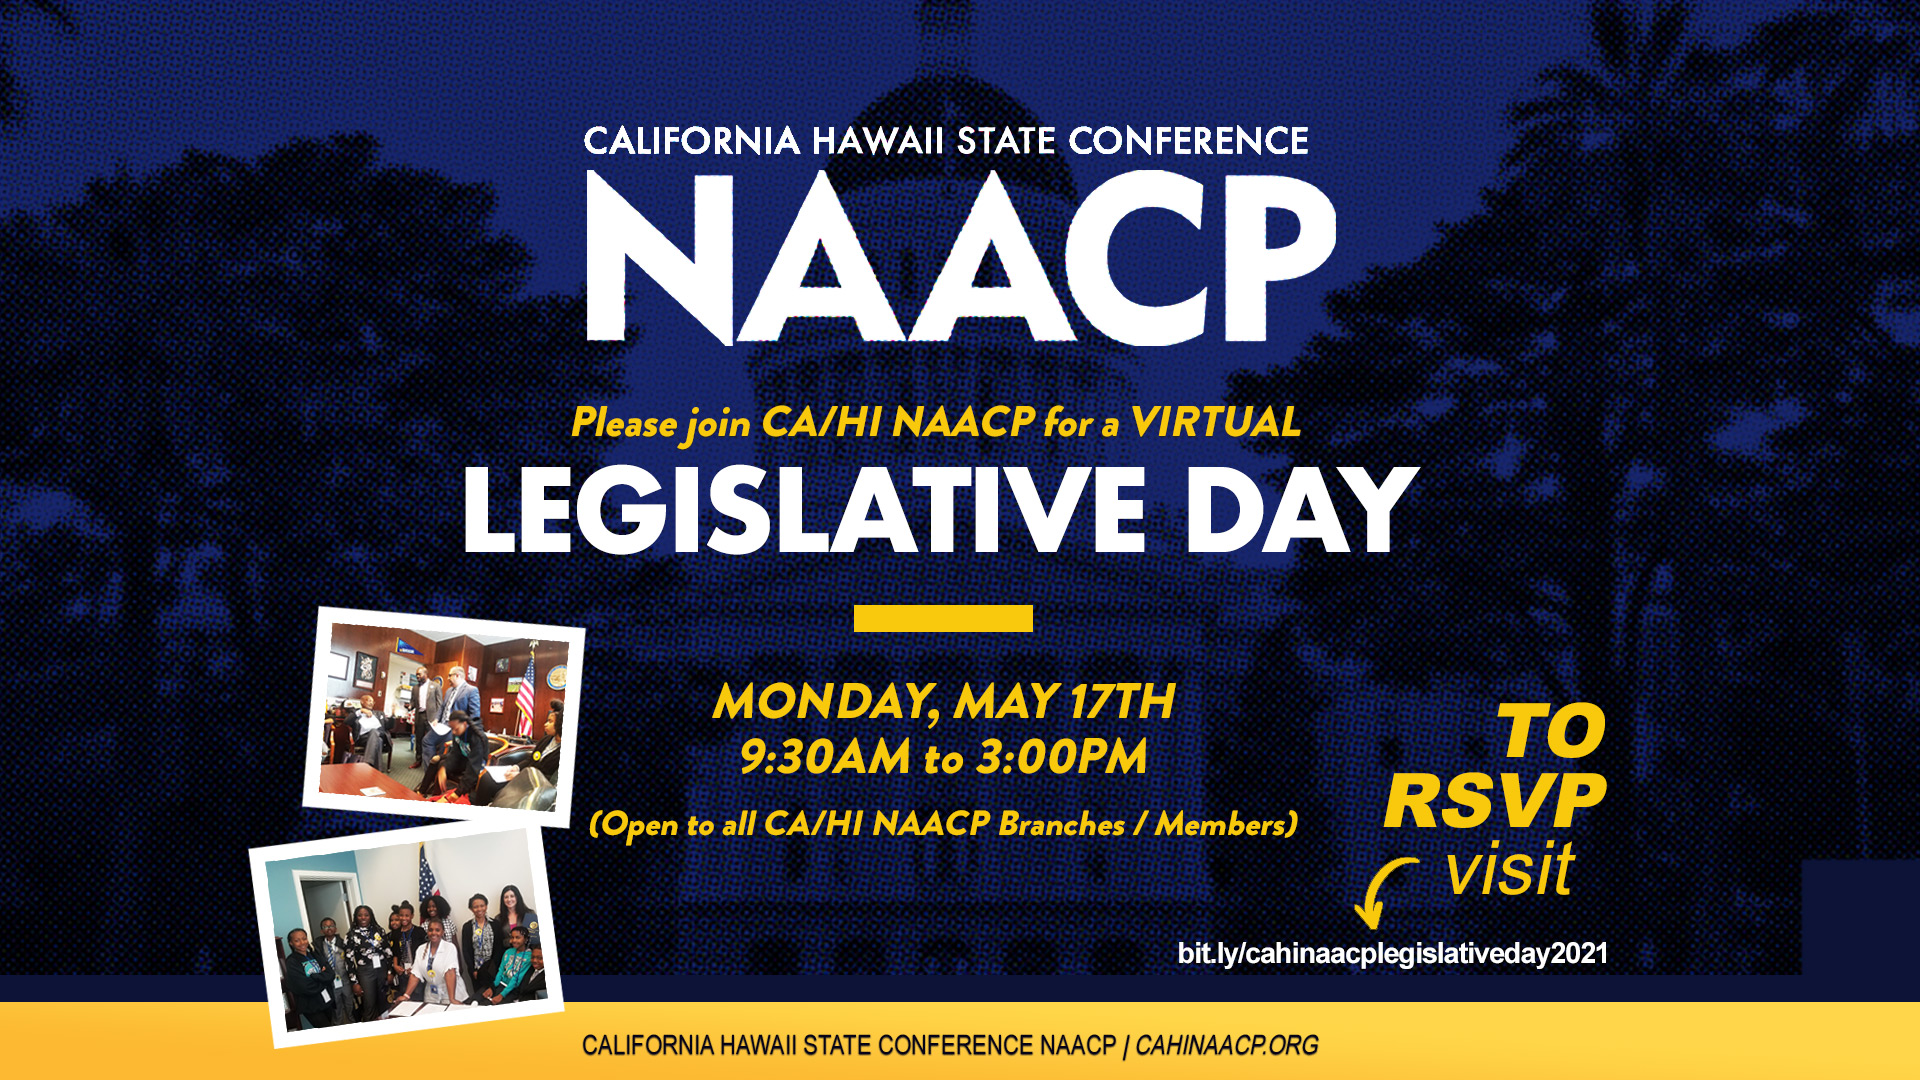 CAHINAACP Legislative Day